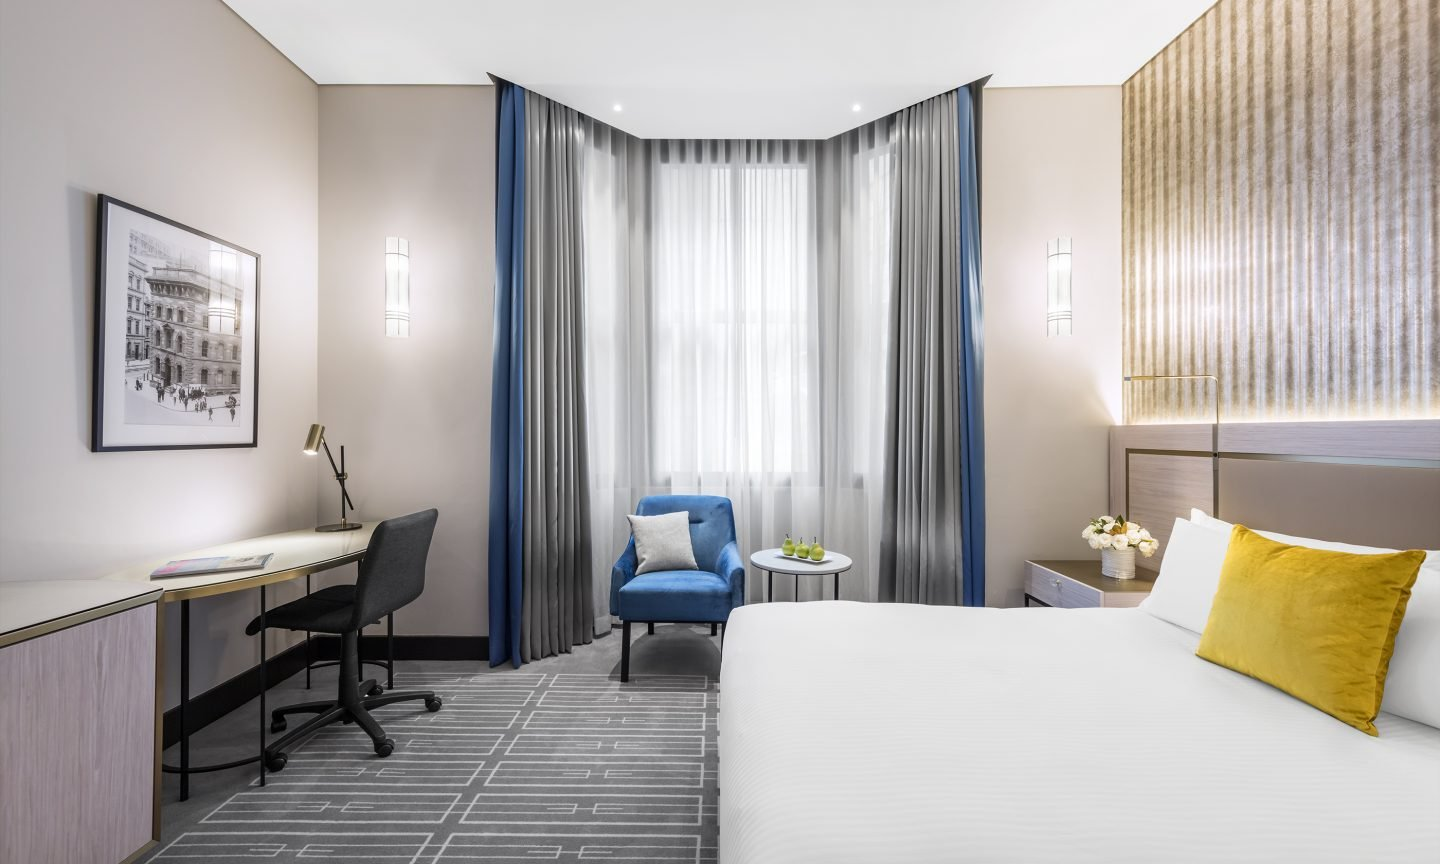 10 New Radisson Hotels for Your Return to Travel - NerdWallet